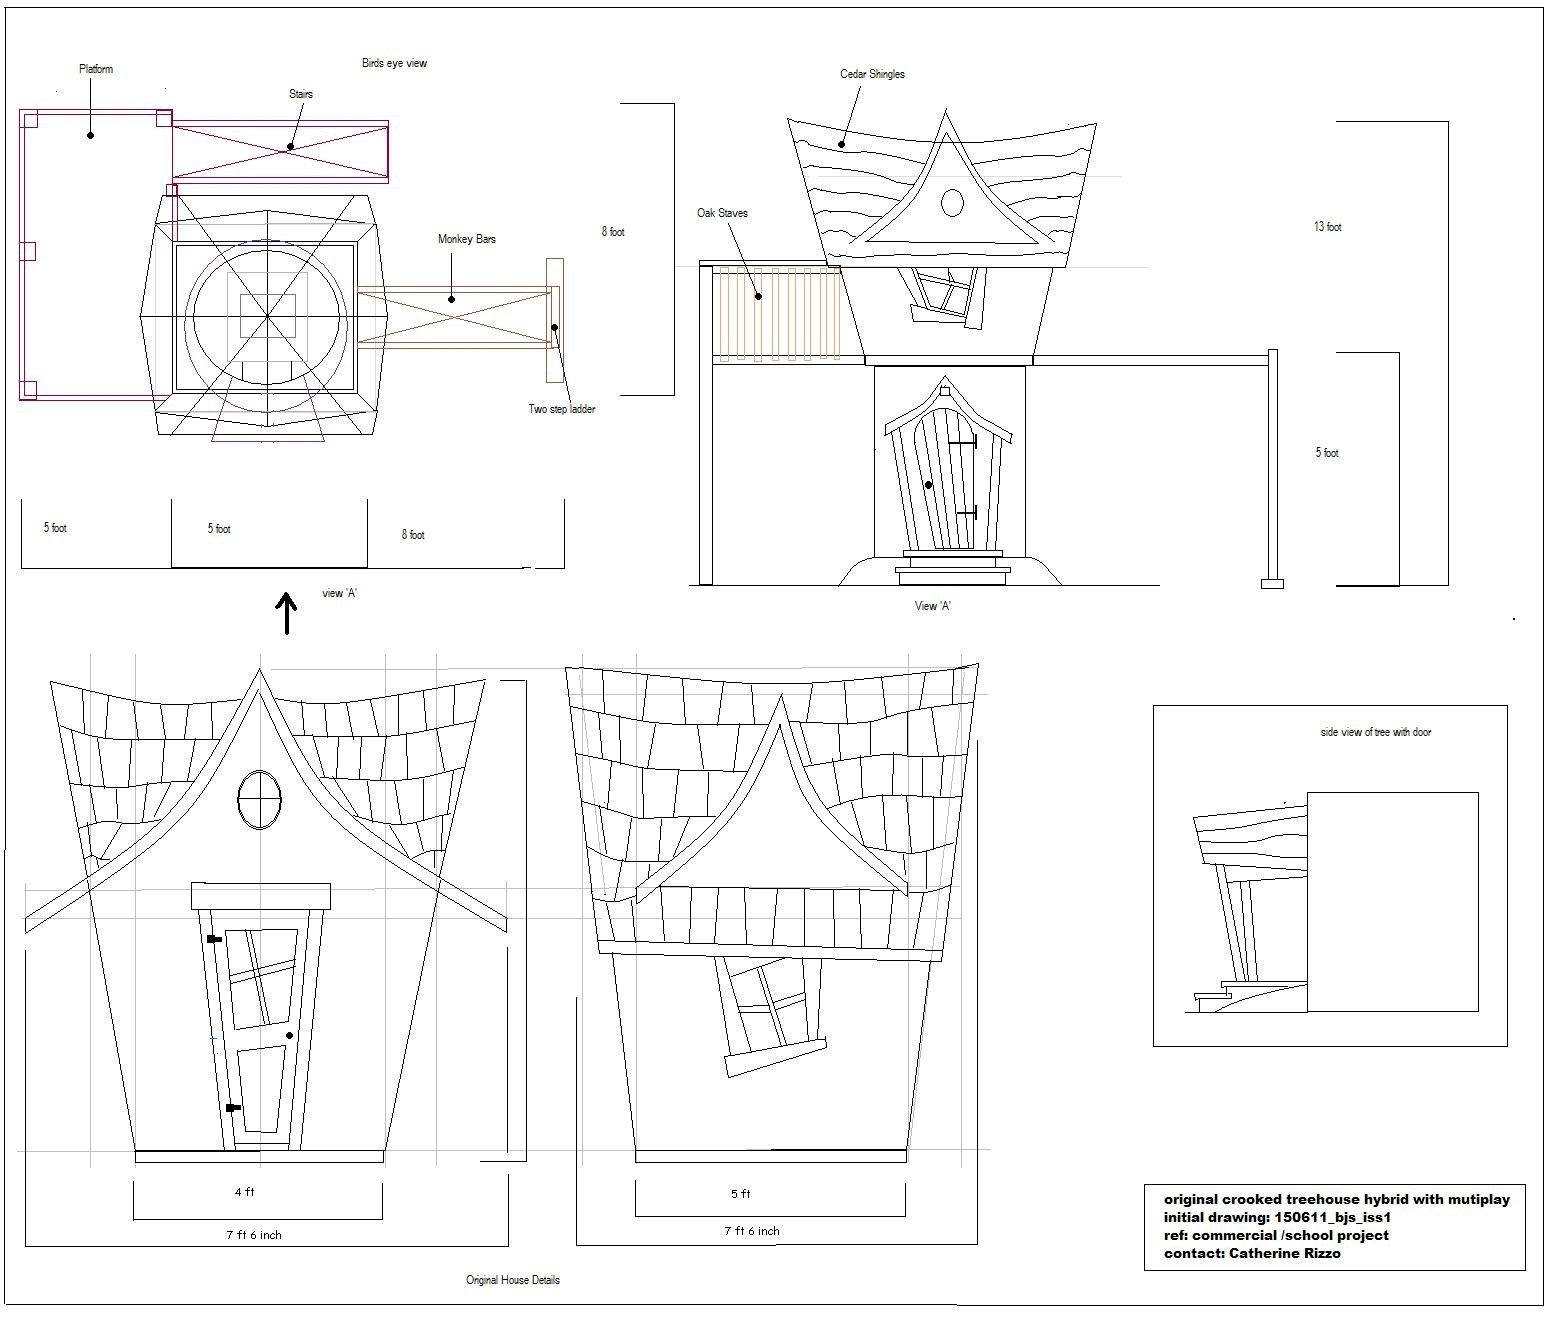 How To Build Crooked Playhouse Kits Plans Woodworking Log Dresser Plans Playhouse Kits Play Houses Kids Playhouse